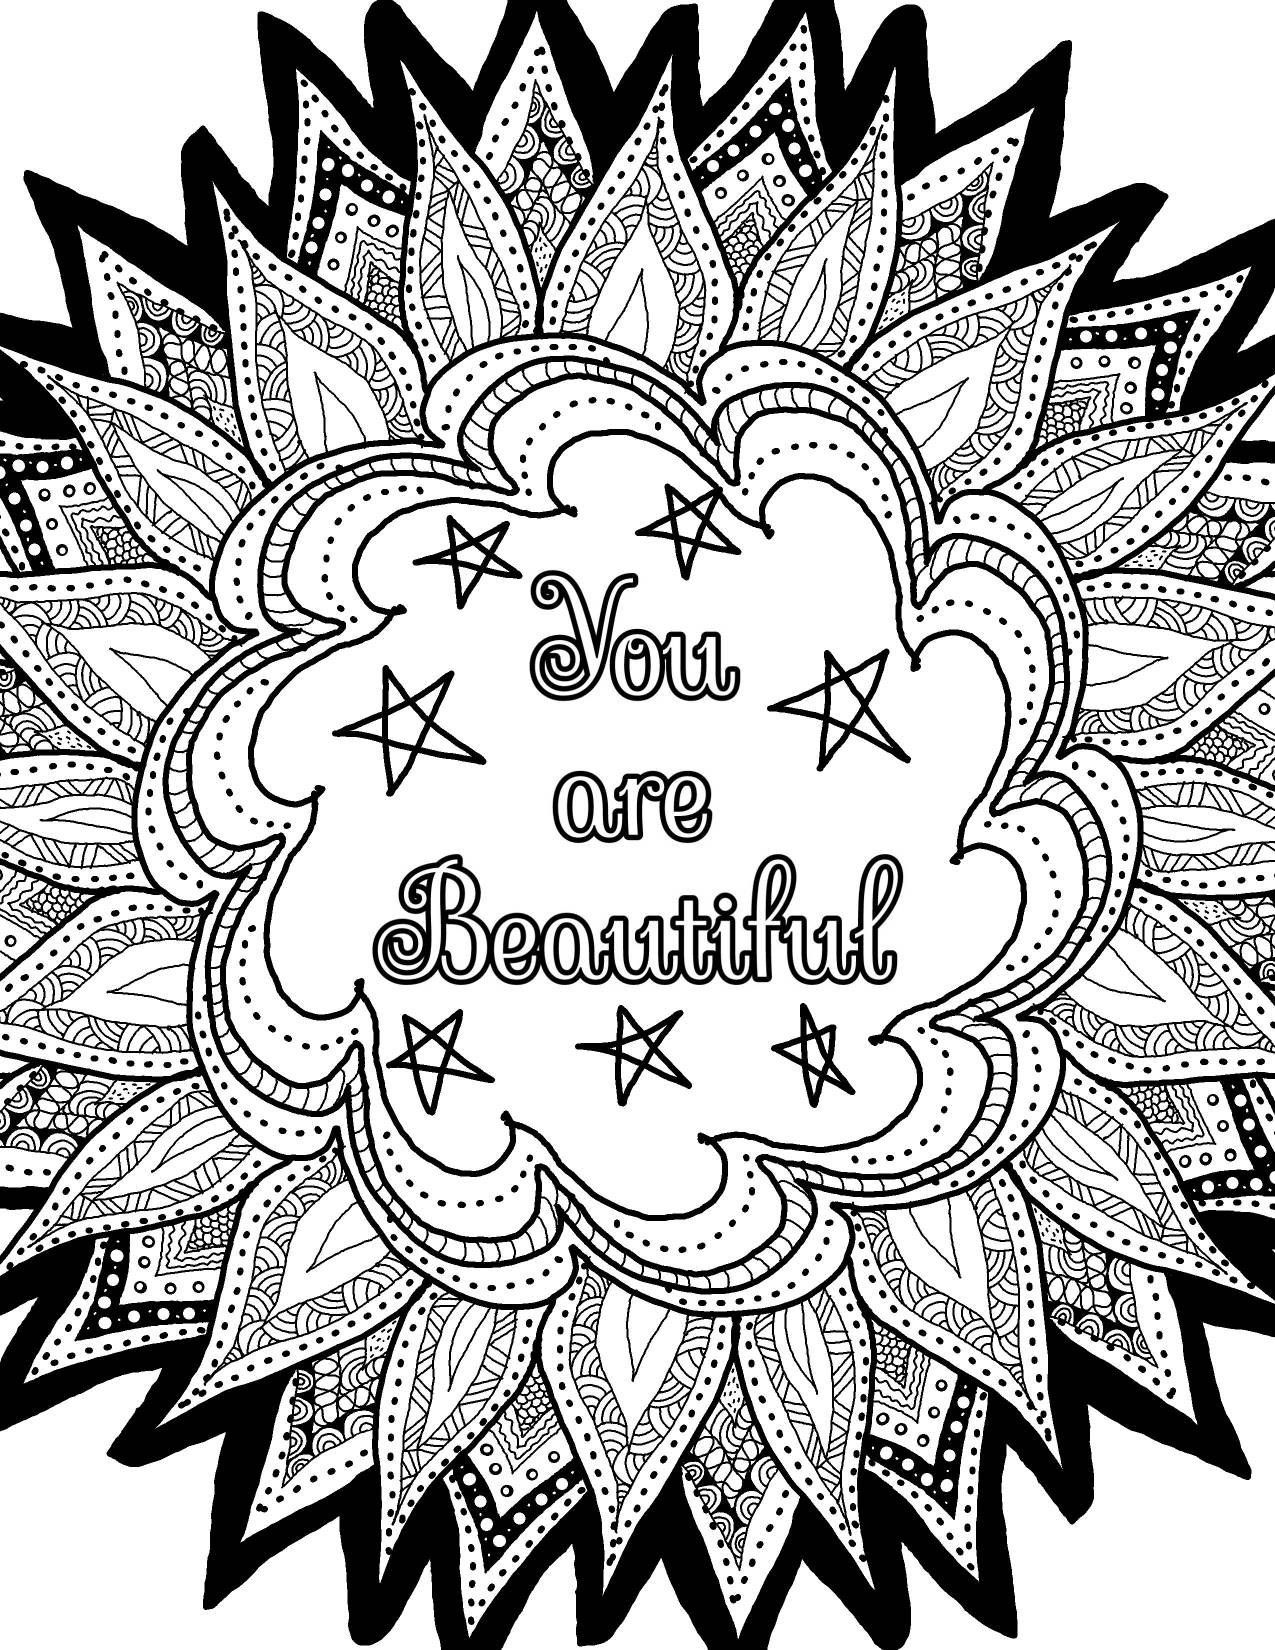 21 Printable Inspirational Coloring Pages Hellboyfull Org Coloring Pages Inspirational Quote Coloring Pages Coloring Book Pages